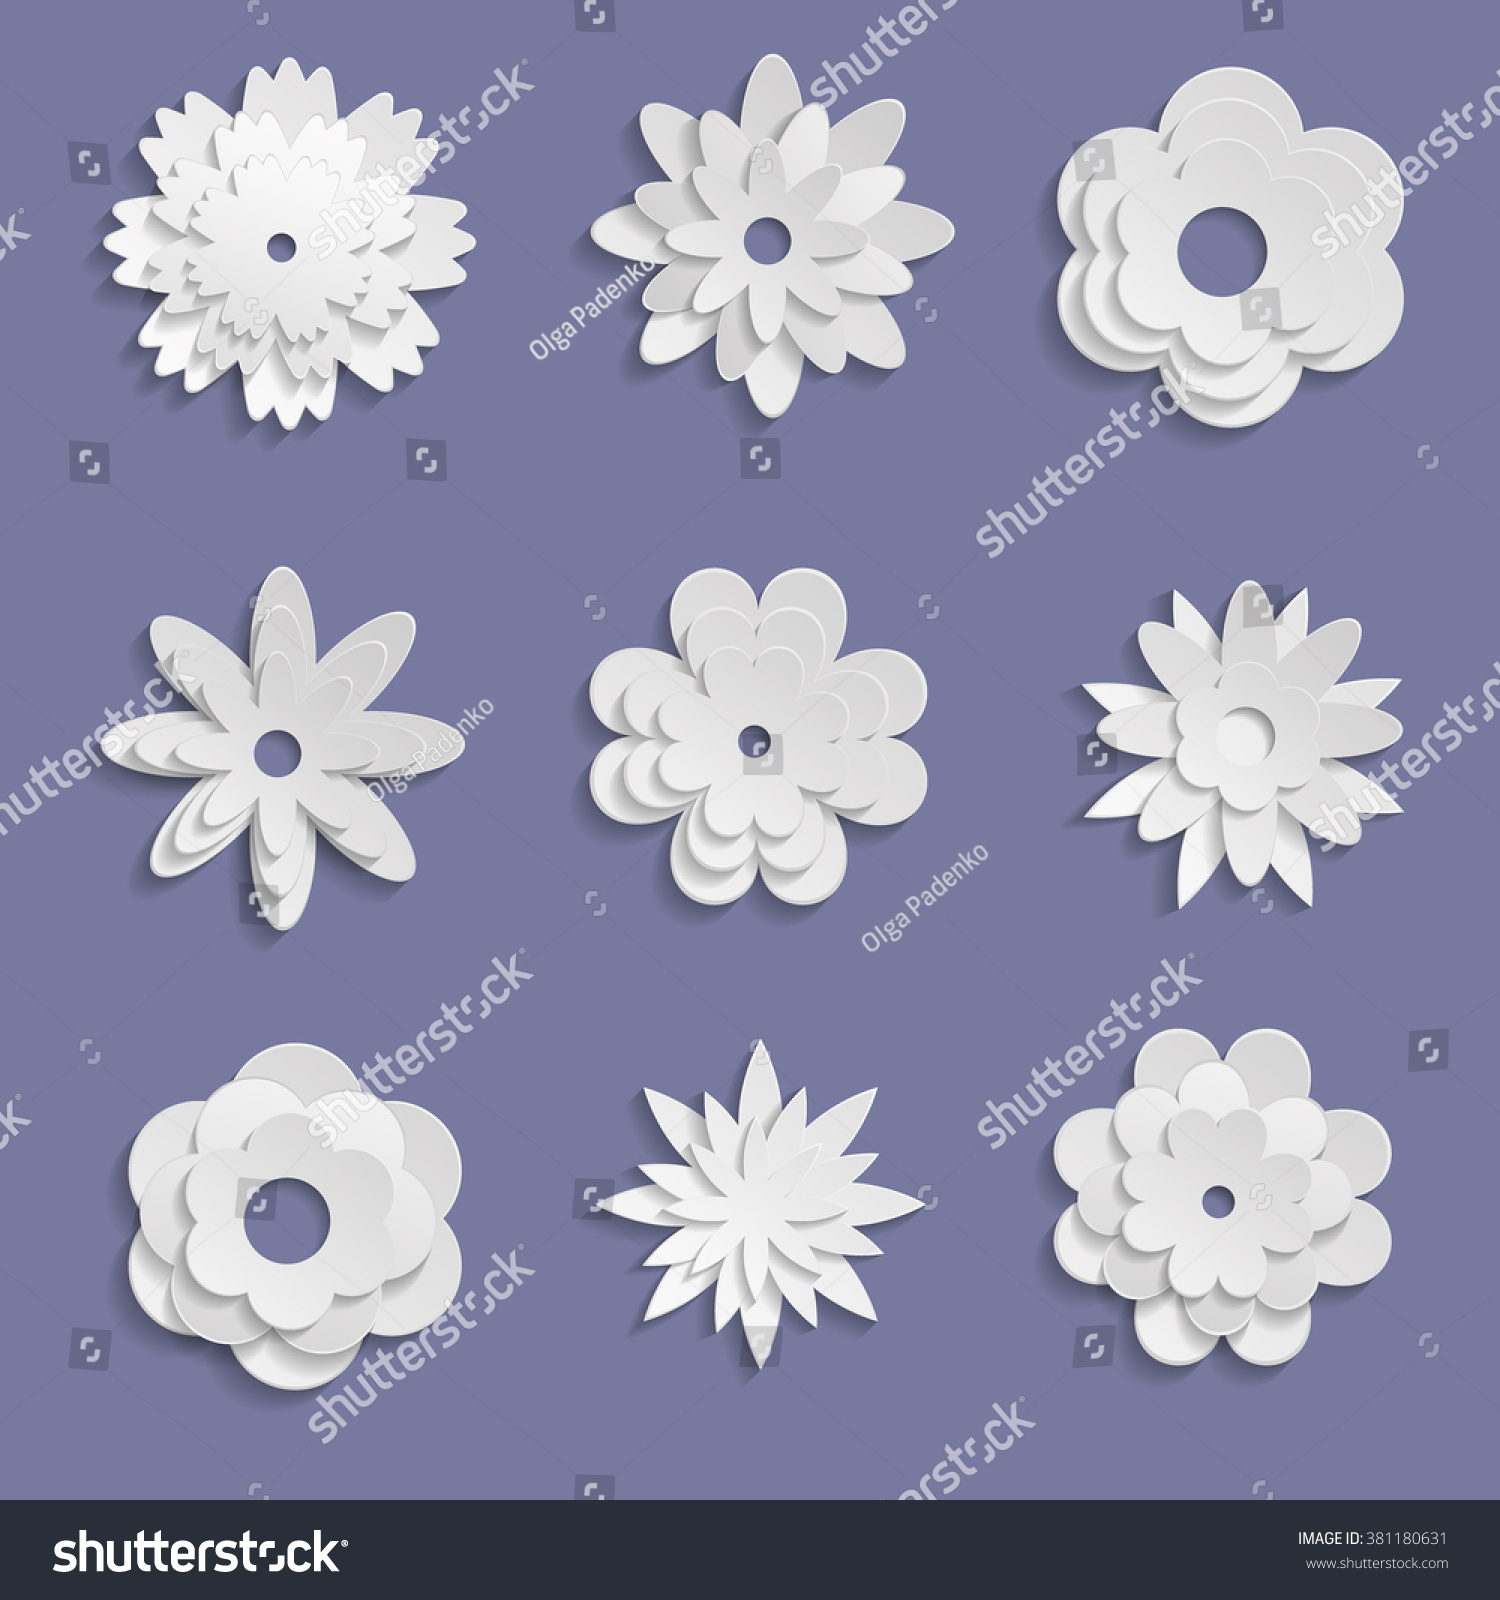 Paper Origami Flowers On Violet Background Stock Vector Royalty